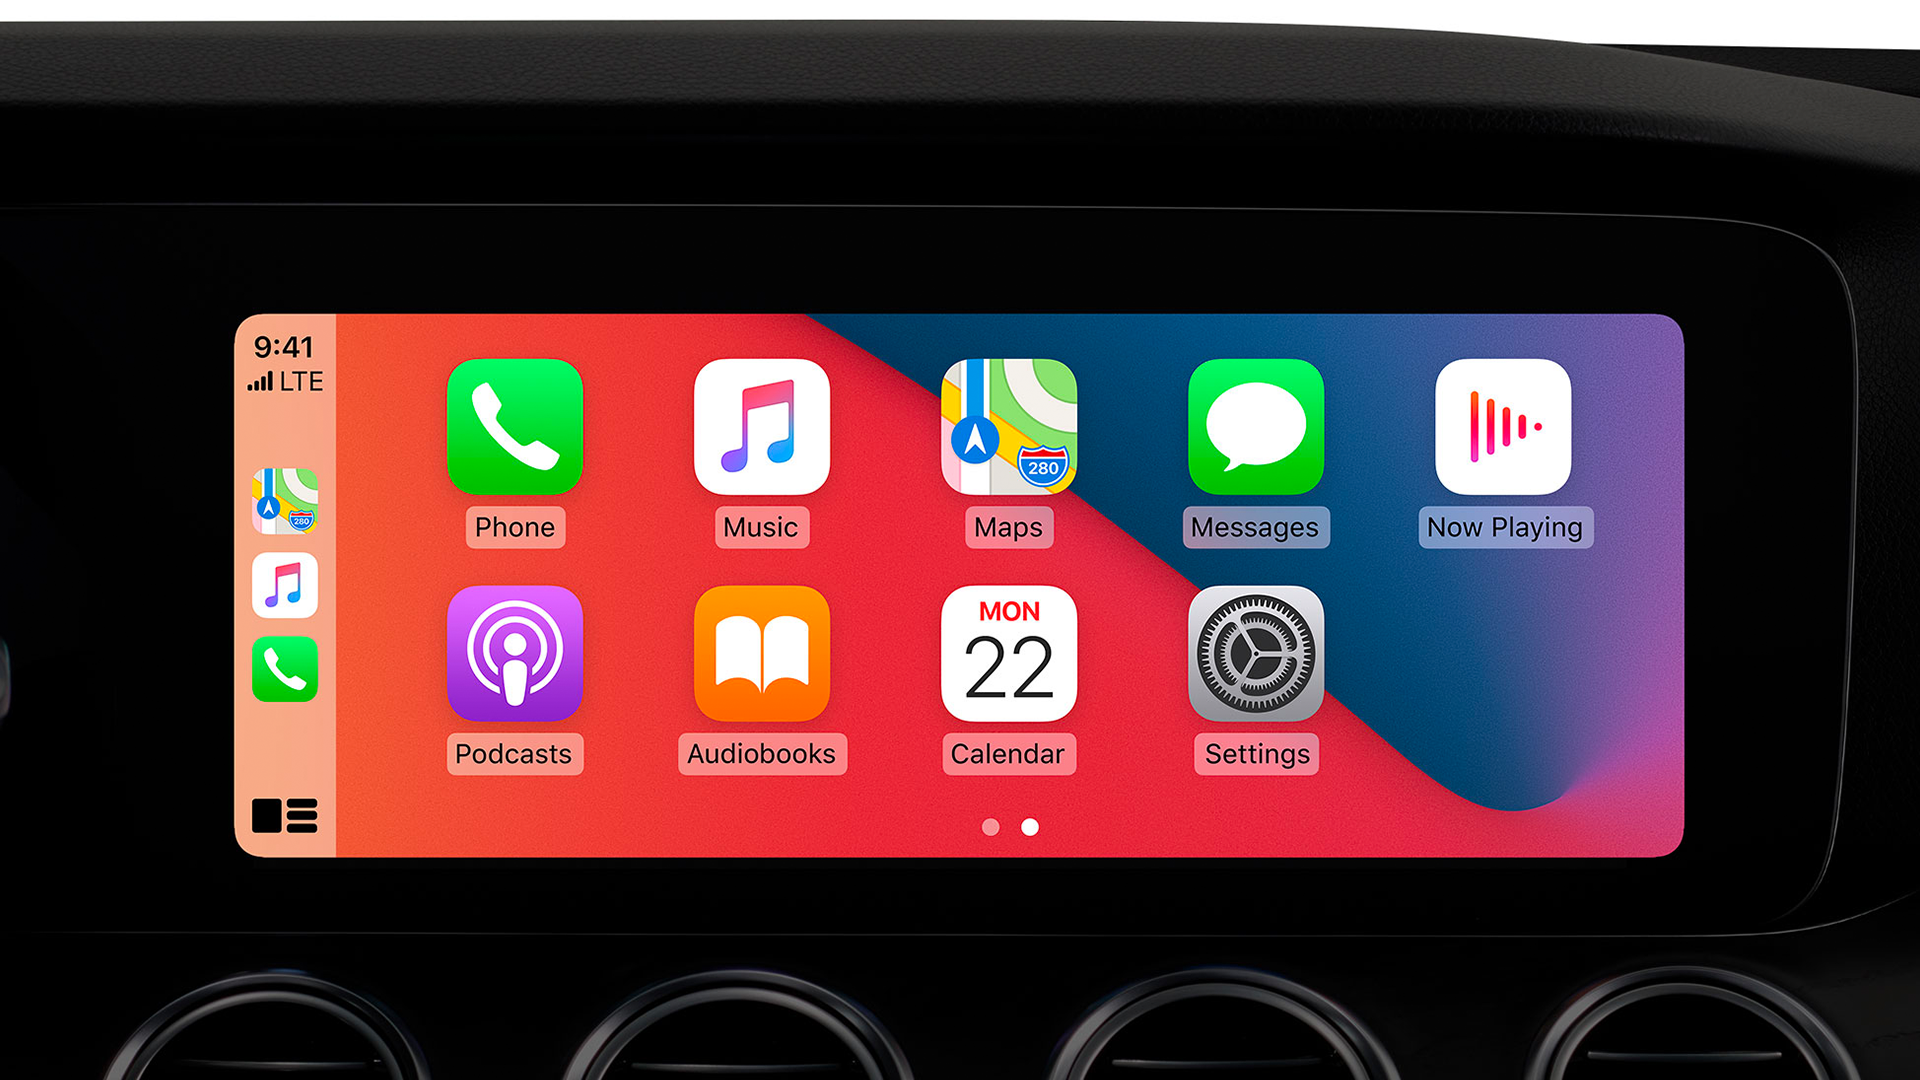 Download the new CarPlay wallpapers for your devices right here